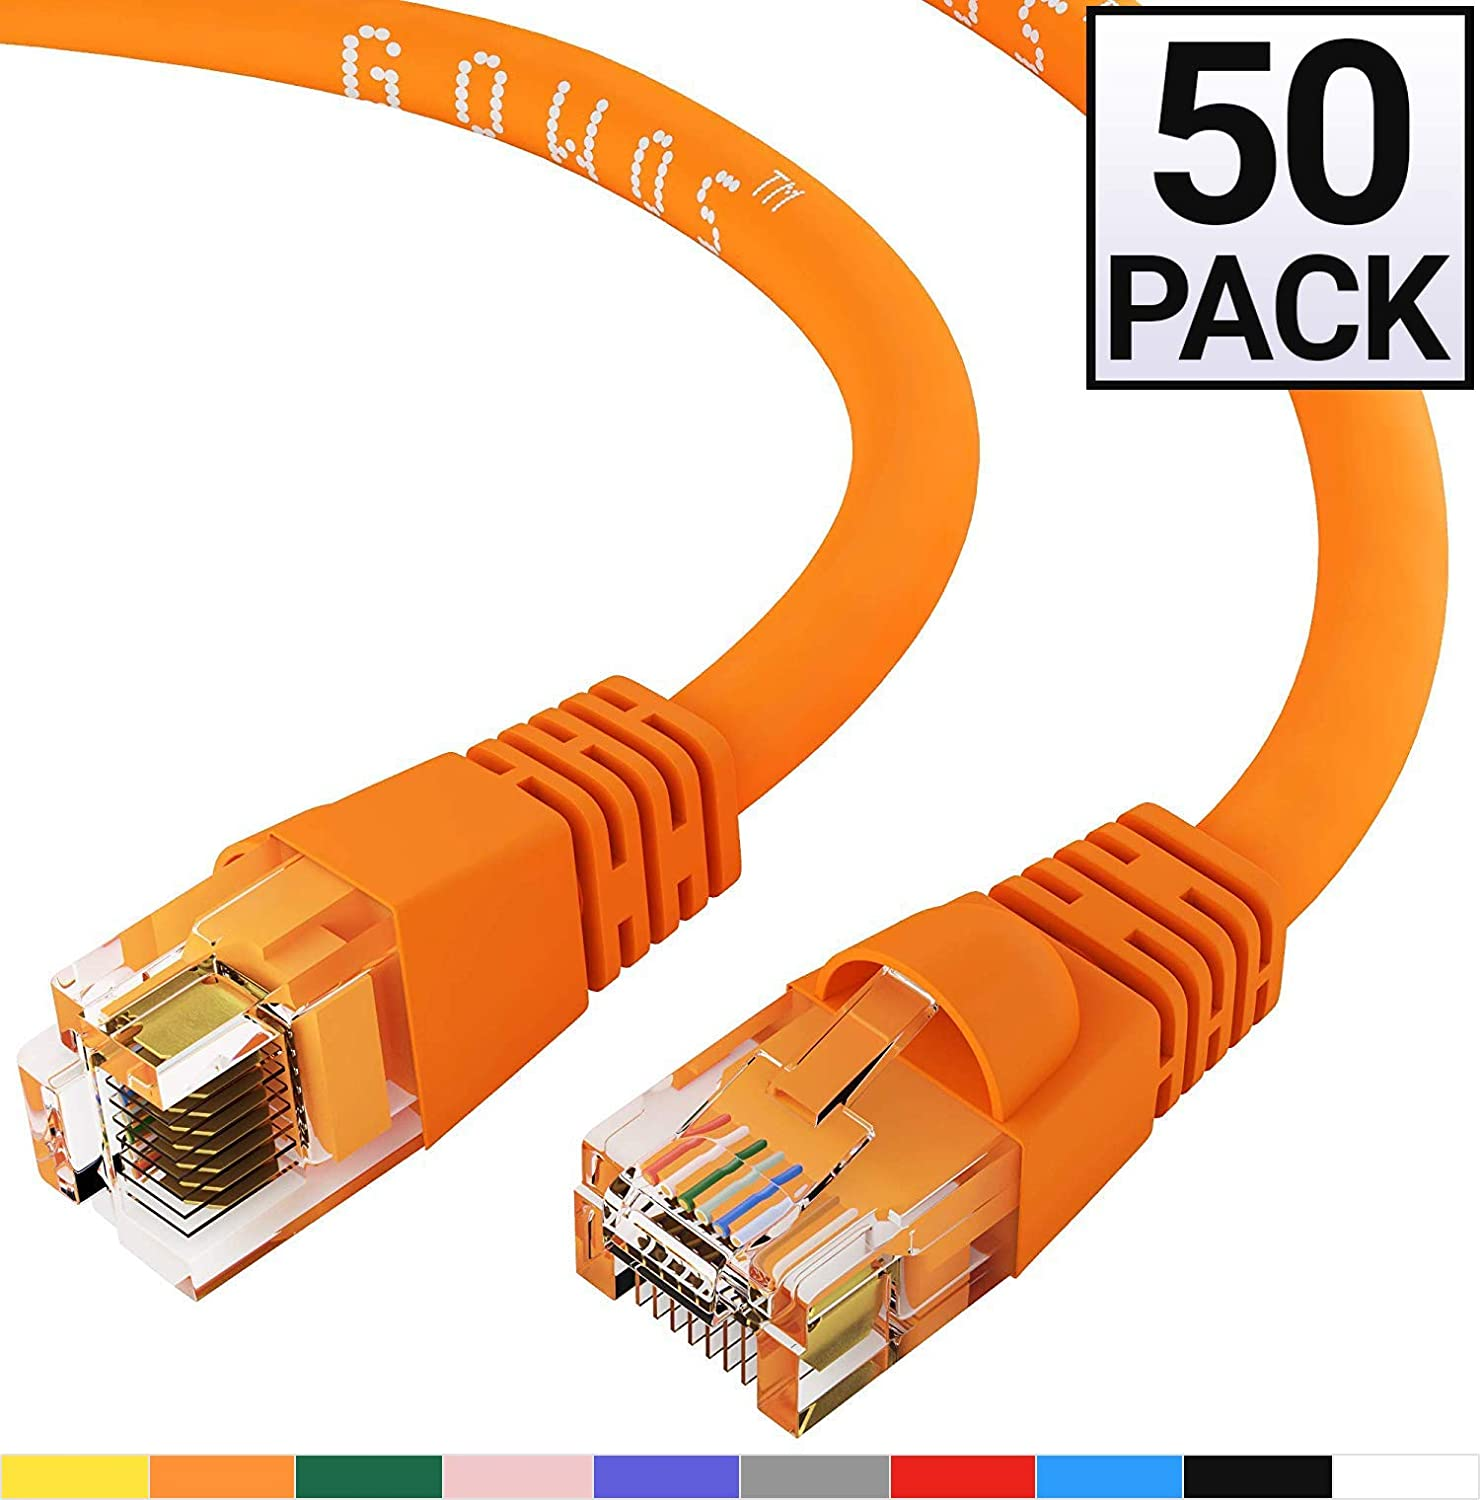 50-Pack - 15 FT 24AWG Network Cable with Gold Plated RJ45 Snagless//Molded//Booted Connector Blue 550MHz GOWOS Cat6 Ethernet Cable 10 Gigabit//Sec High Speed LAN Internet//Patch Cable